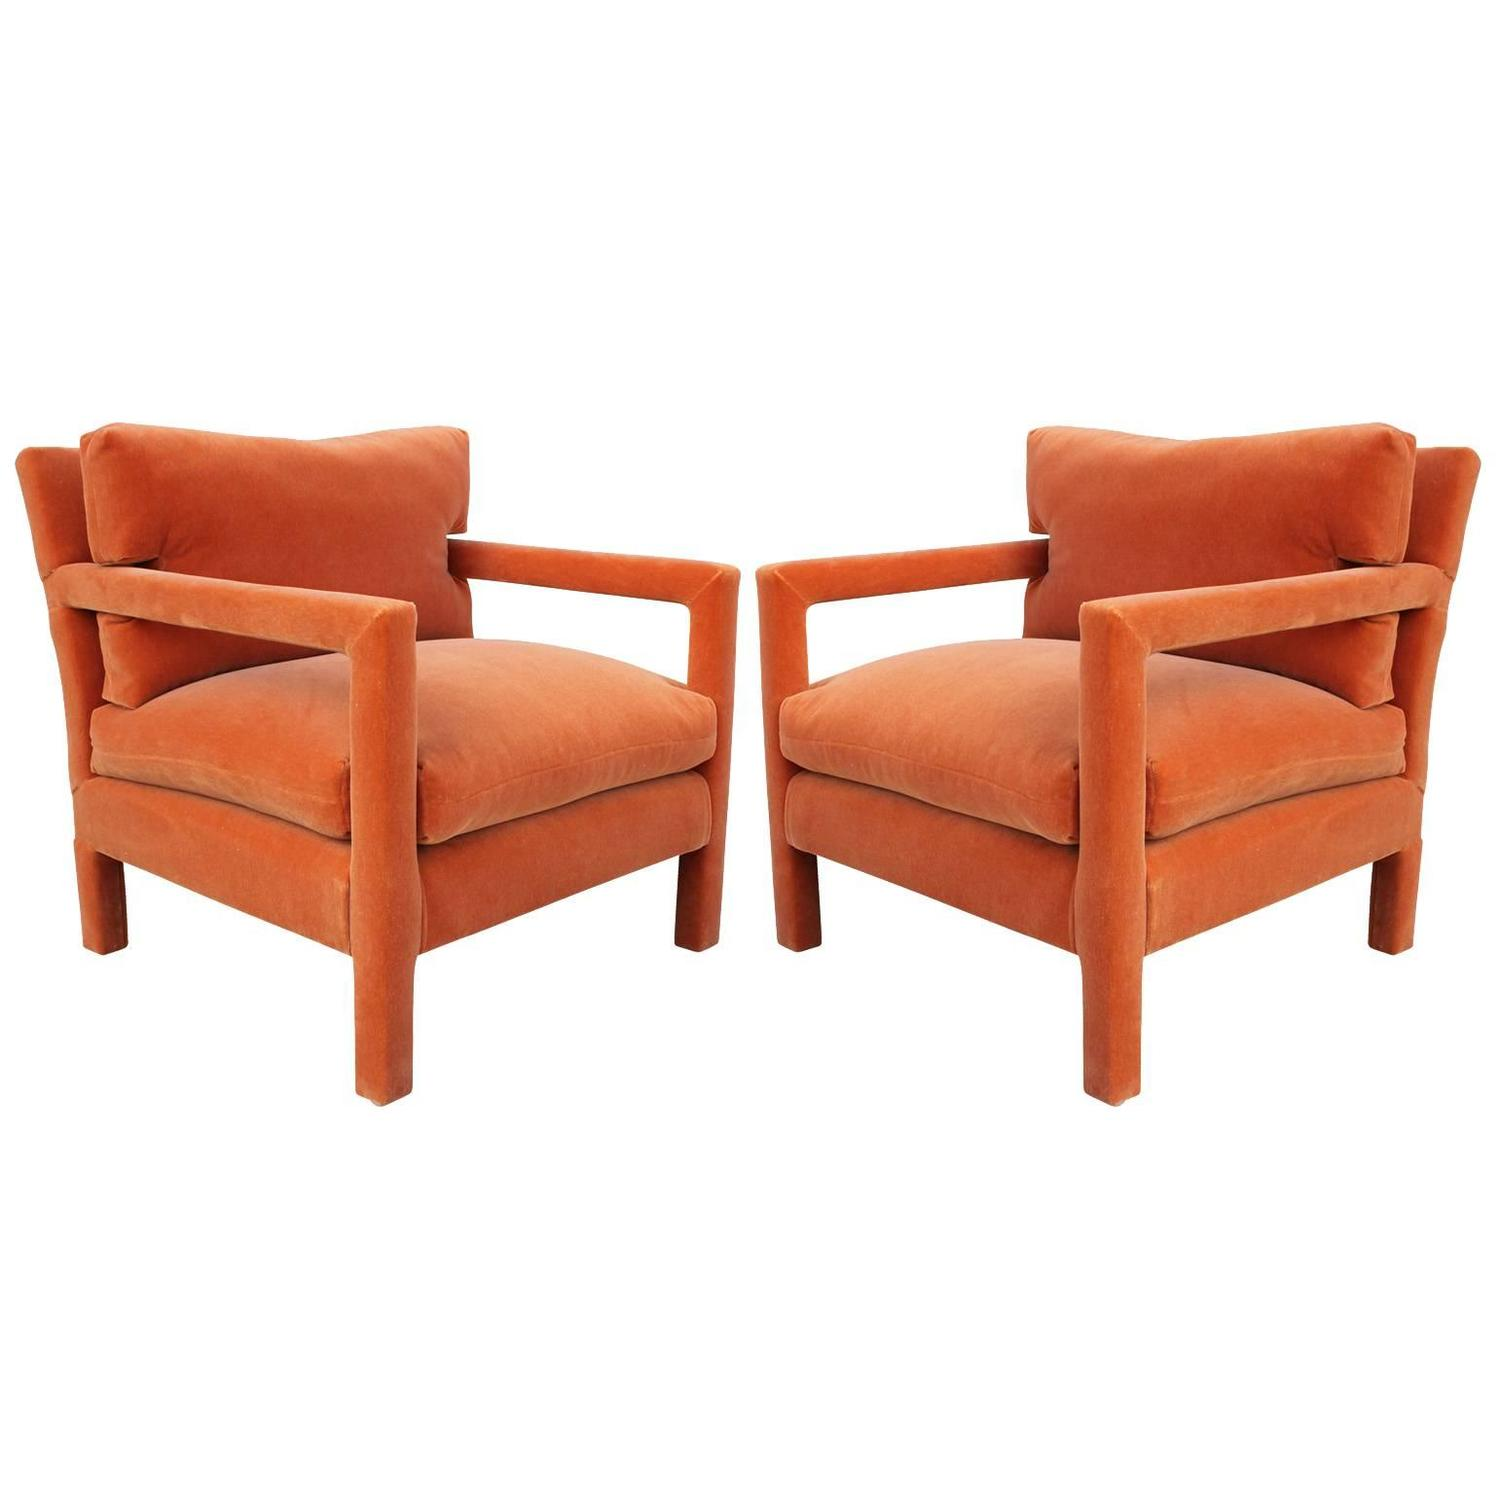 Fabulous Pair Of Milo Baughman Parsons Style Chairs In Orange Mohair Velvet  At 1stdibs